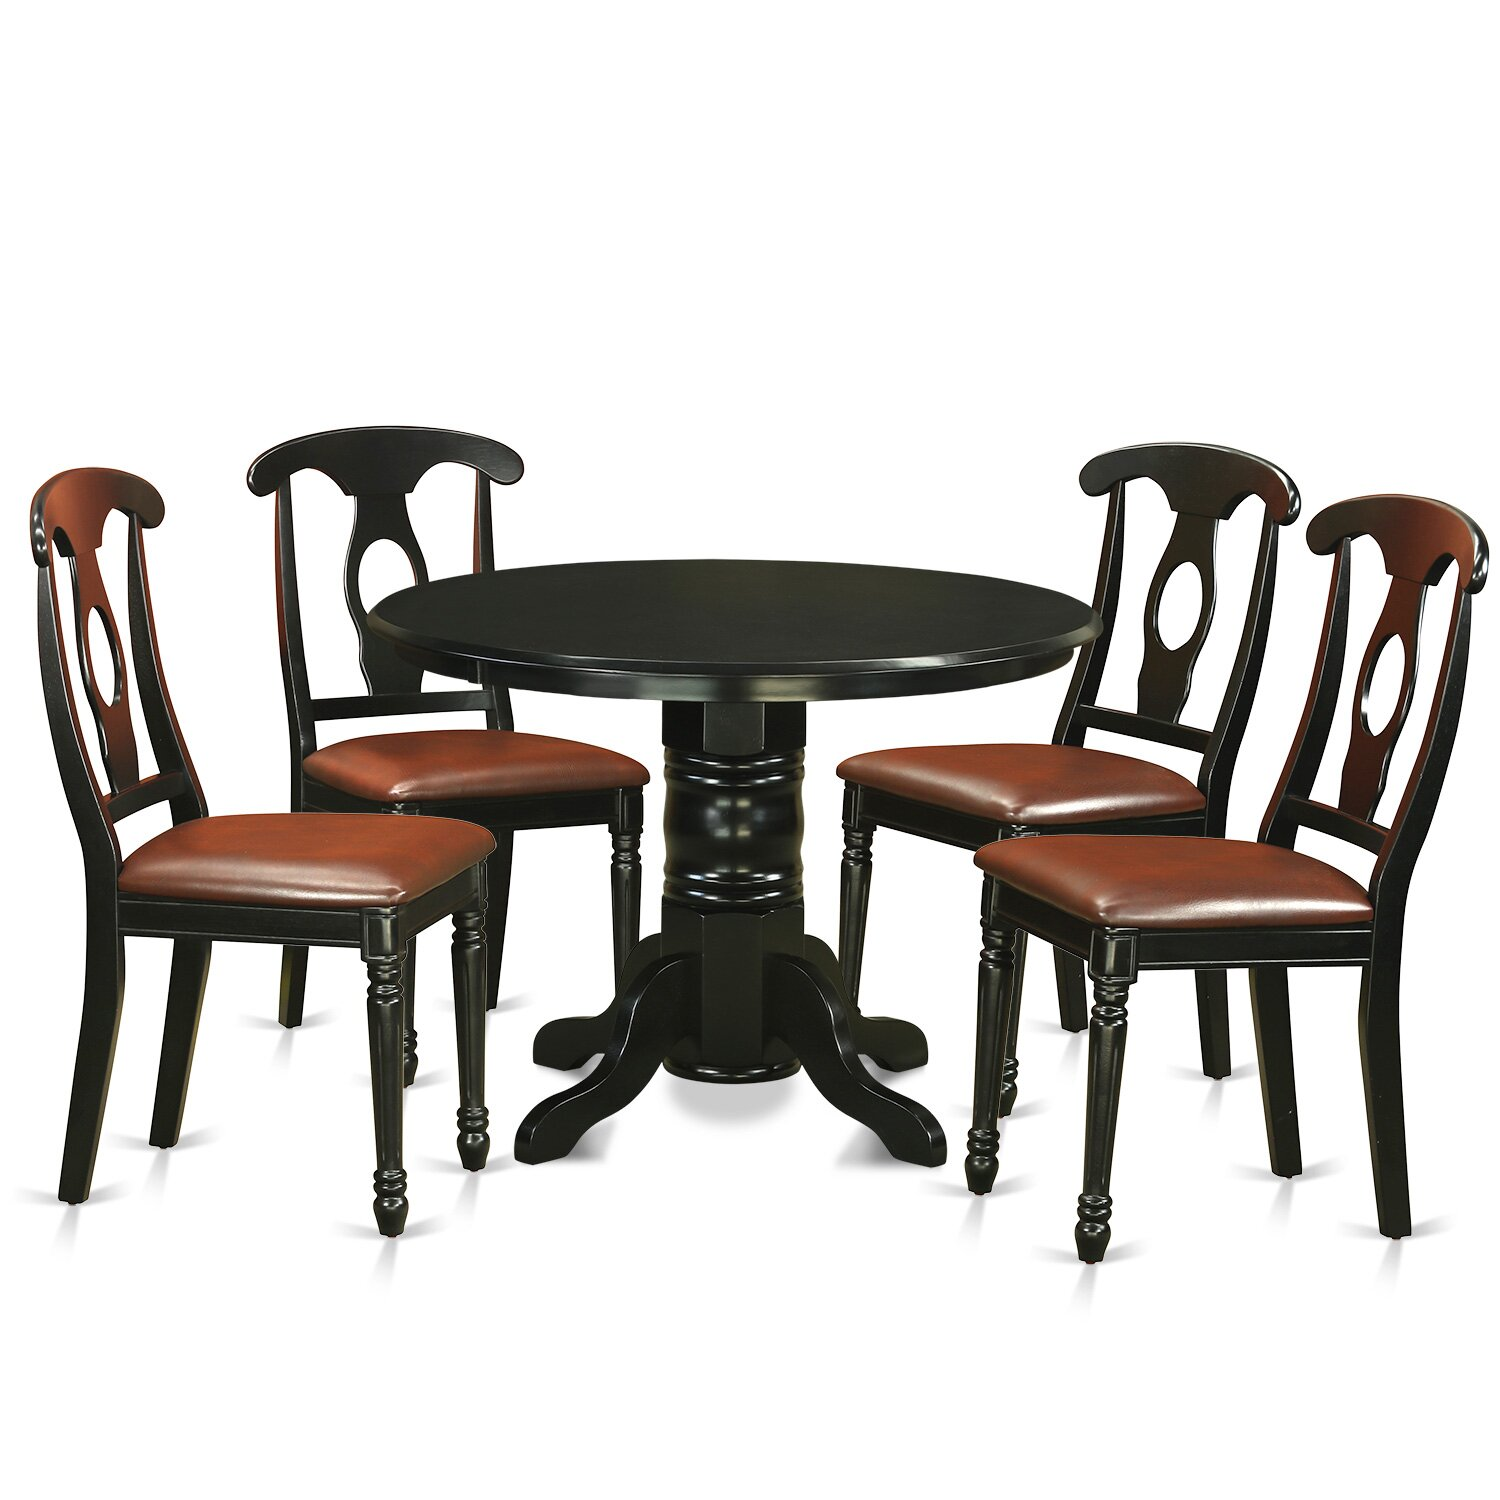 East west shelton 5 piece dining set reviews wayfair for Four chair dining table set